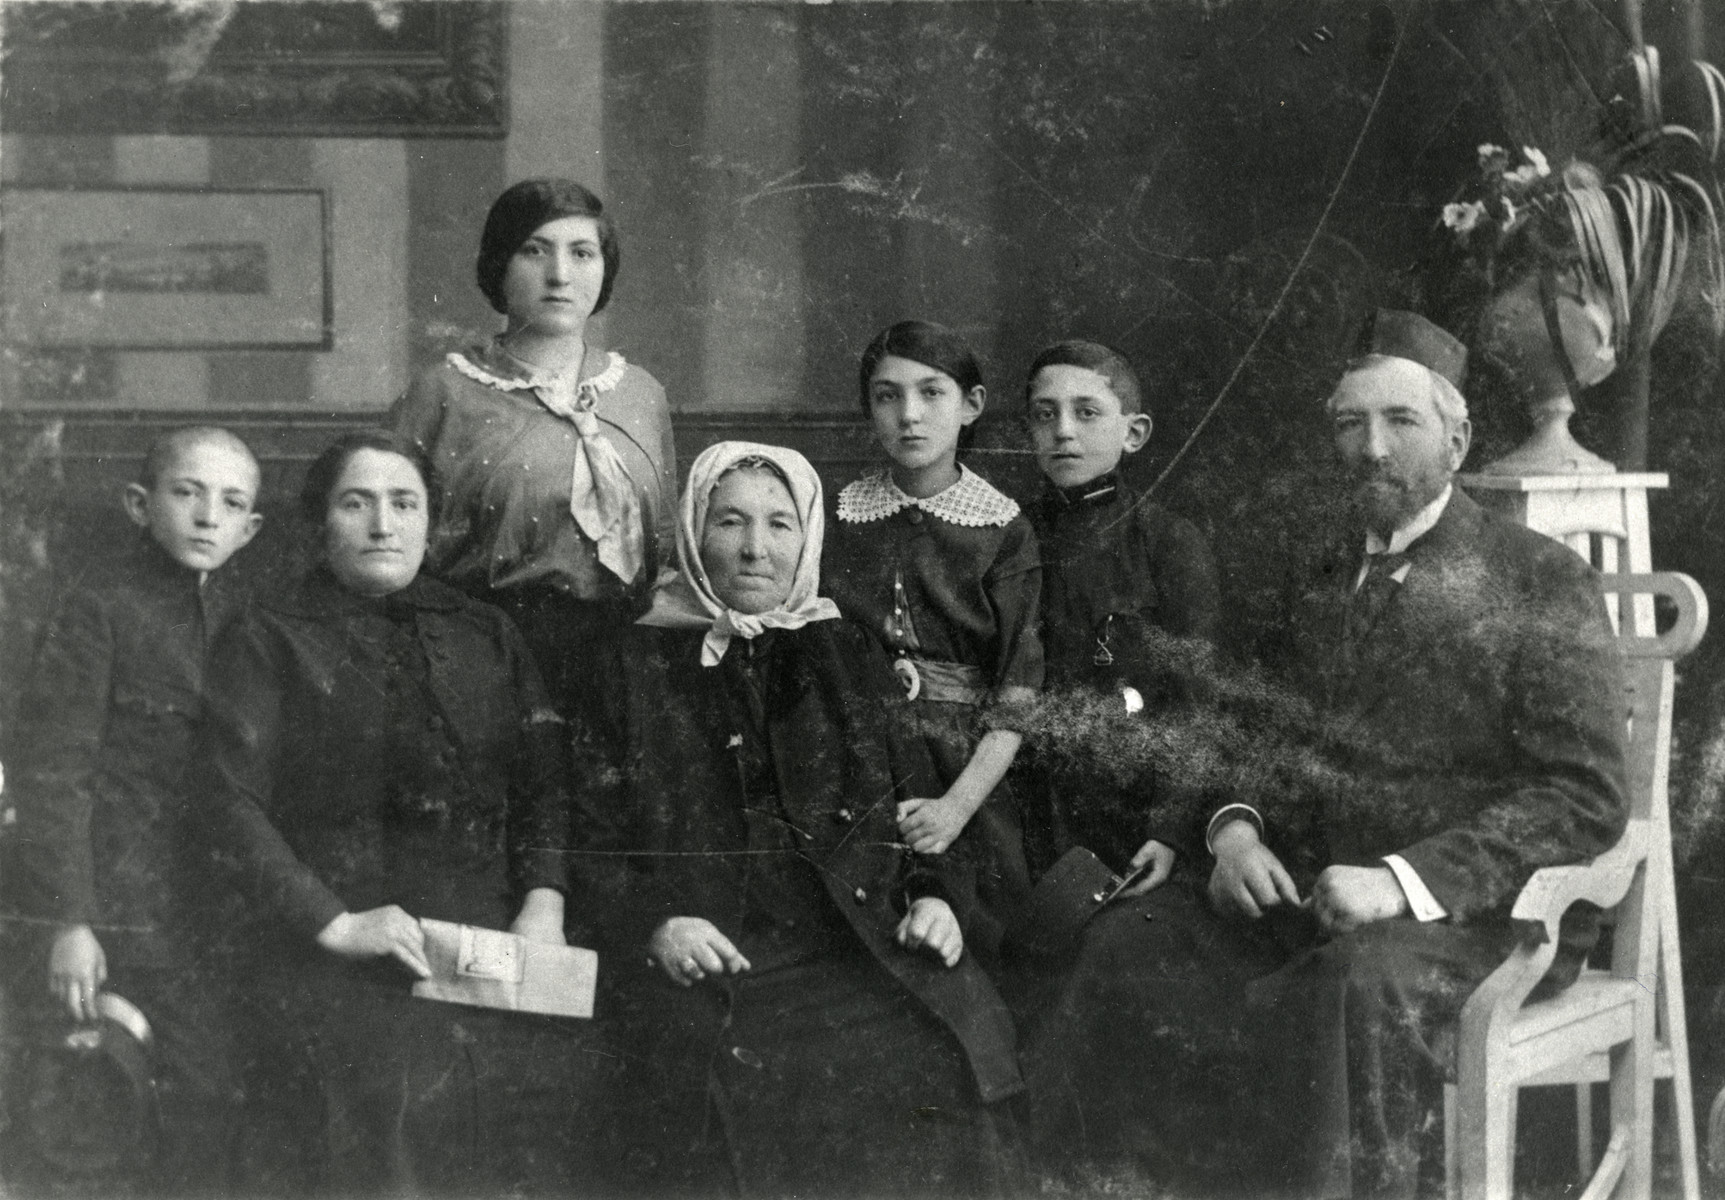 Studio portrait of the Weiselberg family.  After the father Nahum Weiselberg died in a typhus epidemic, his wife Ettel moved to Vienna.  Two children, Salo and Sala immigrated to Palestine.  Another son David became a doctor and immigrated to America.  The second daughter Paula is the mother of the donor.  The grandmother Ettel was deported to Theresienstadt and perished in the Holocaust.